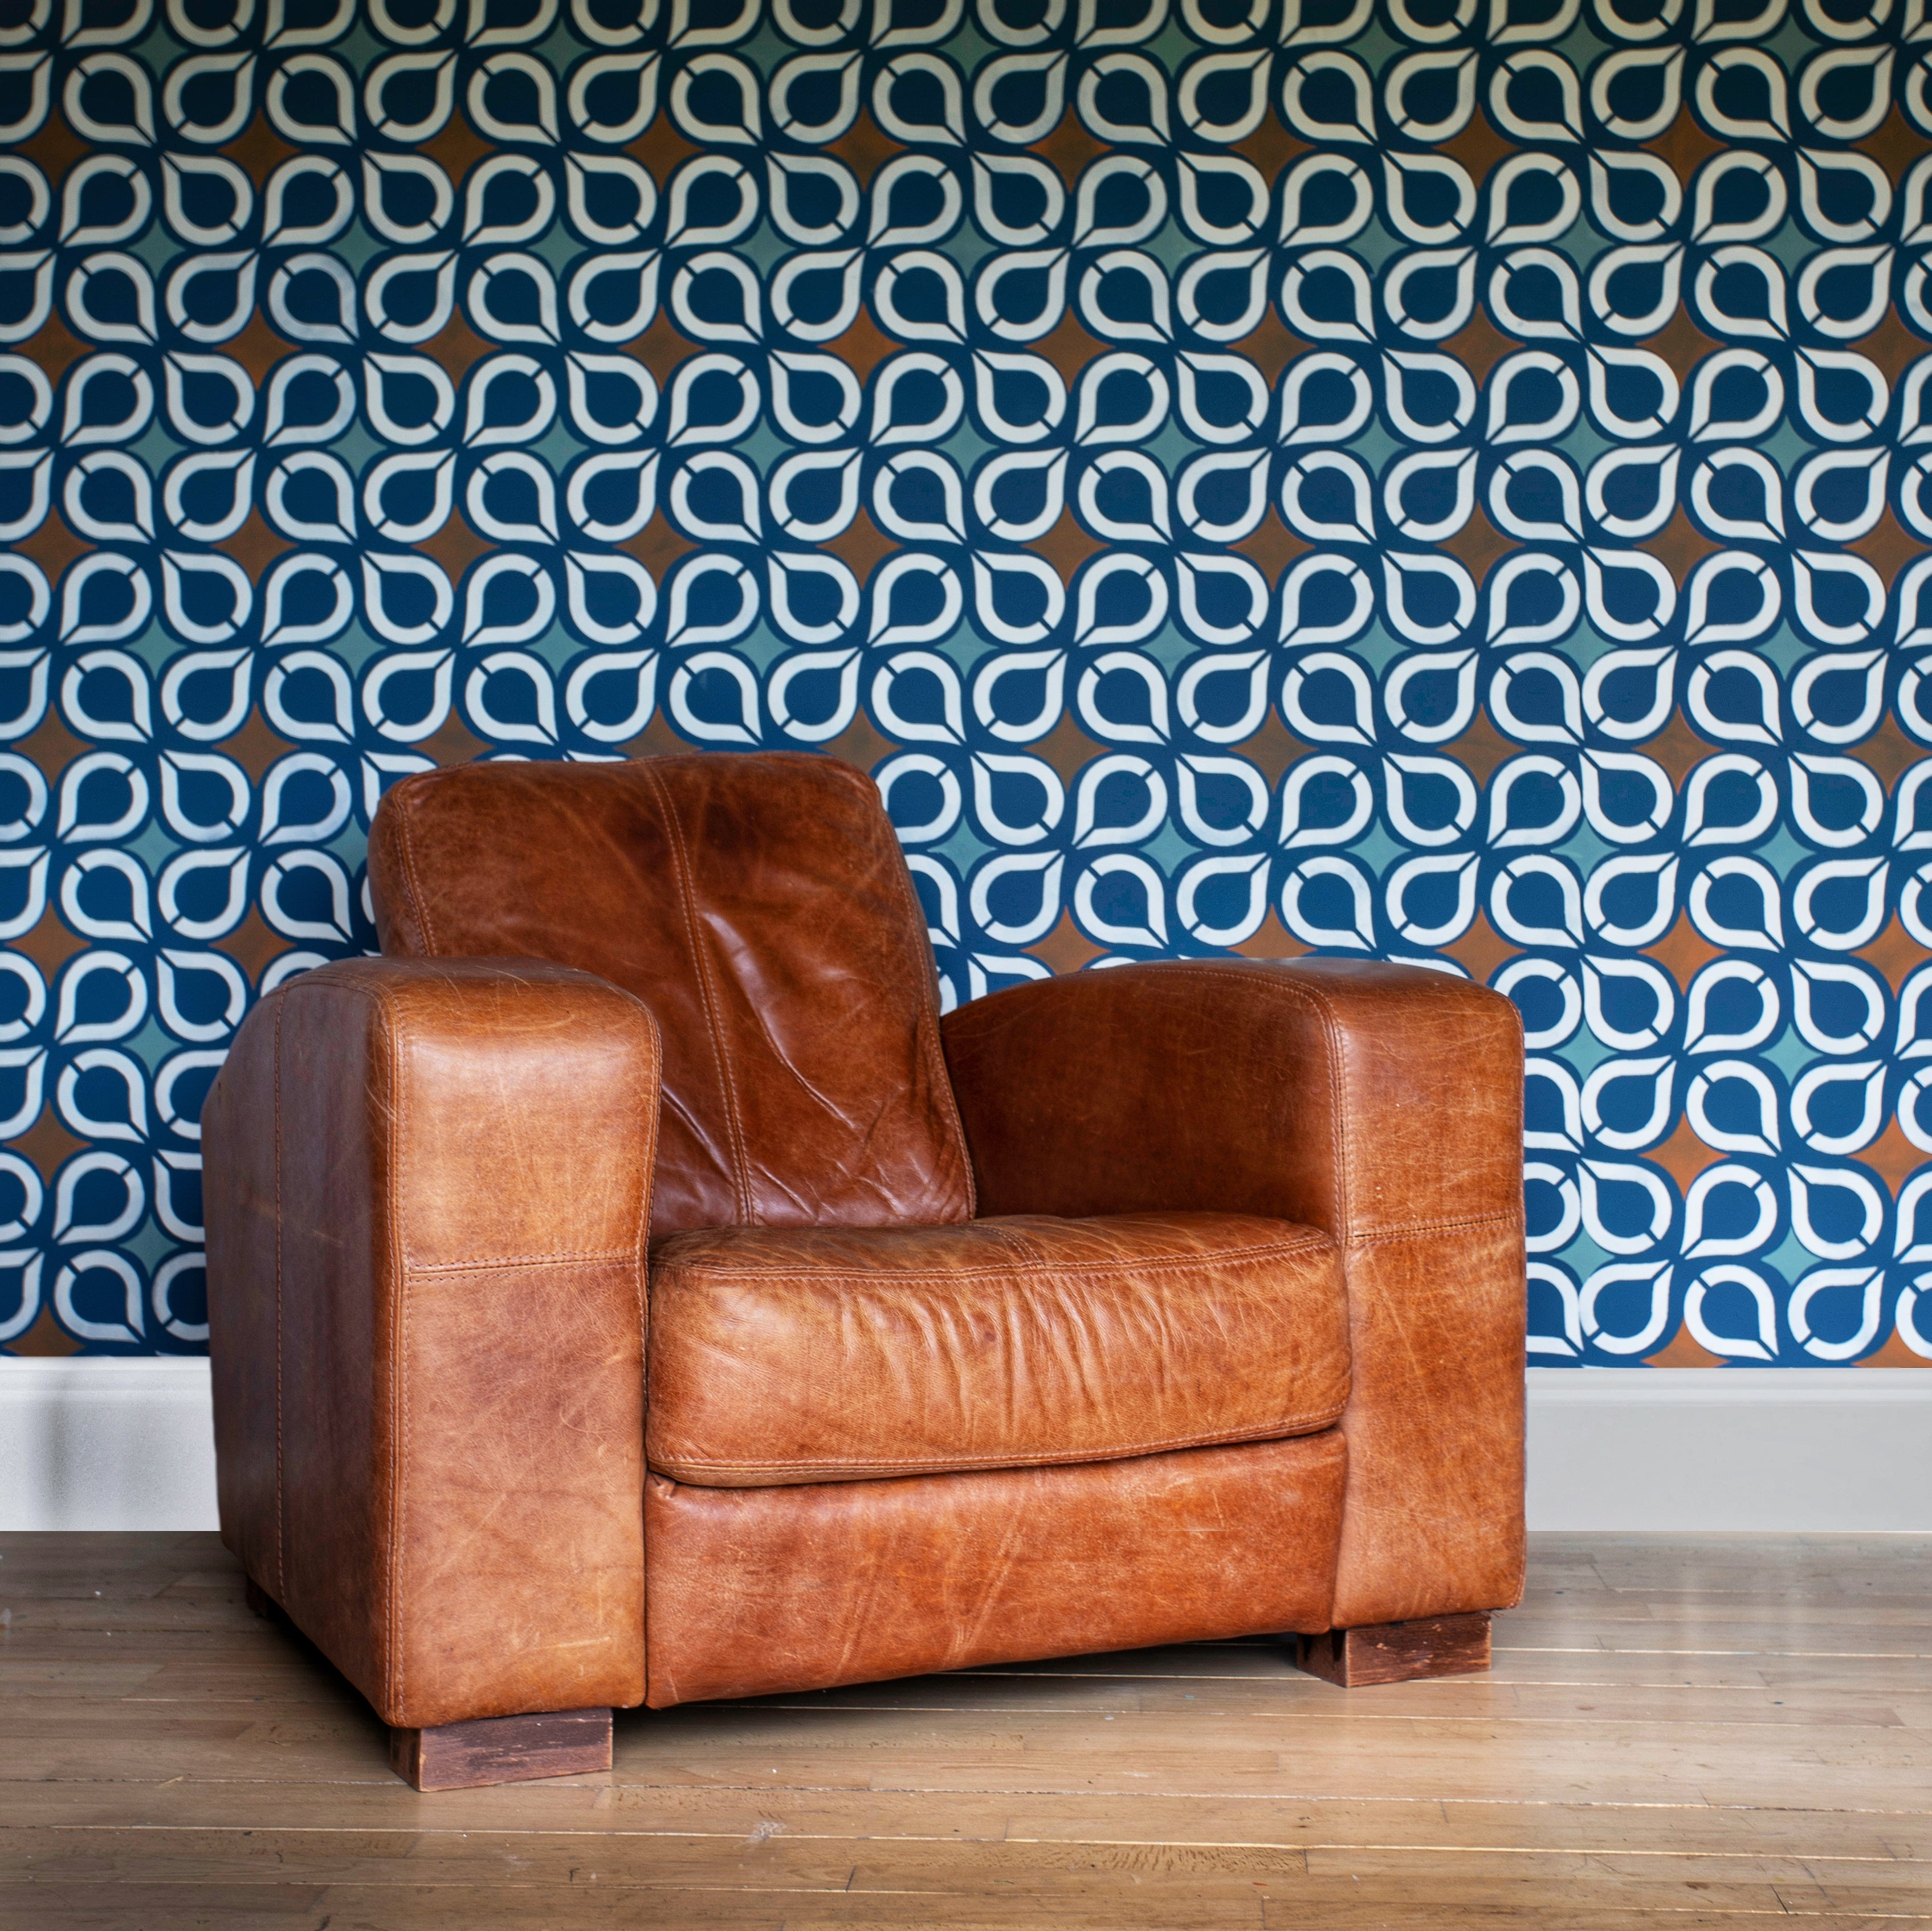 Retro drops feature wall stencil